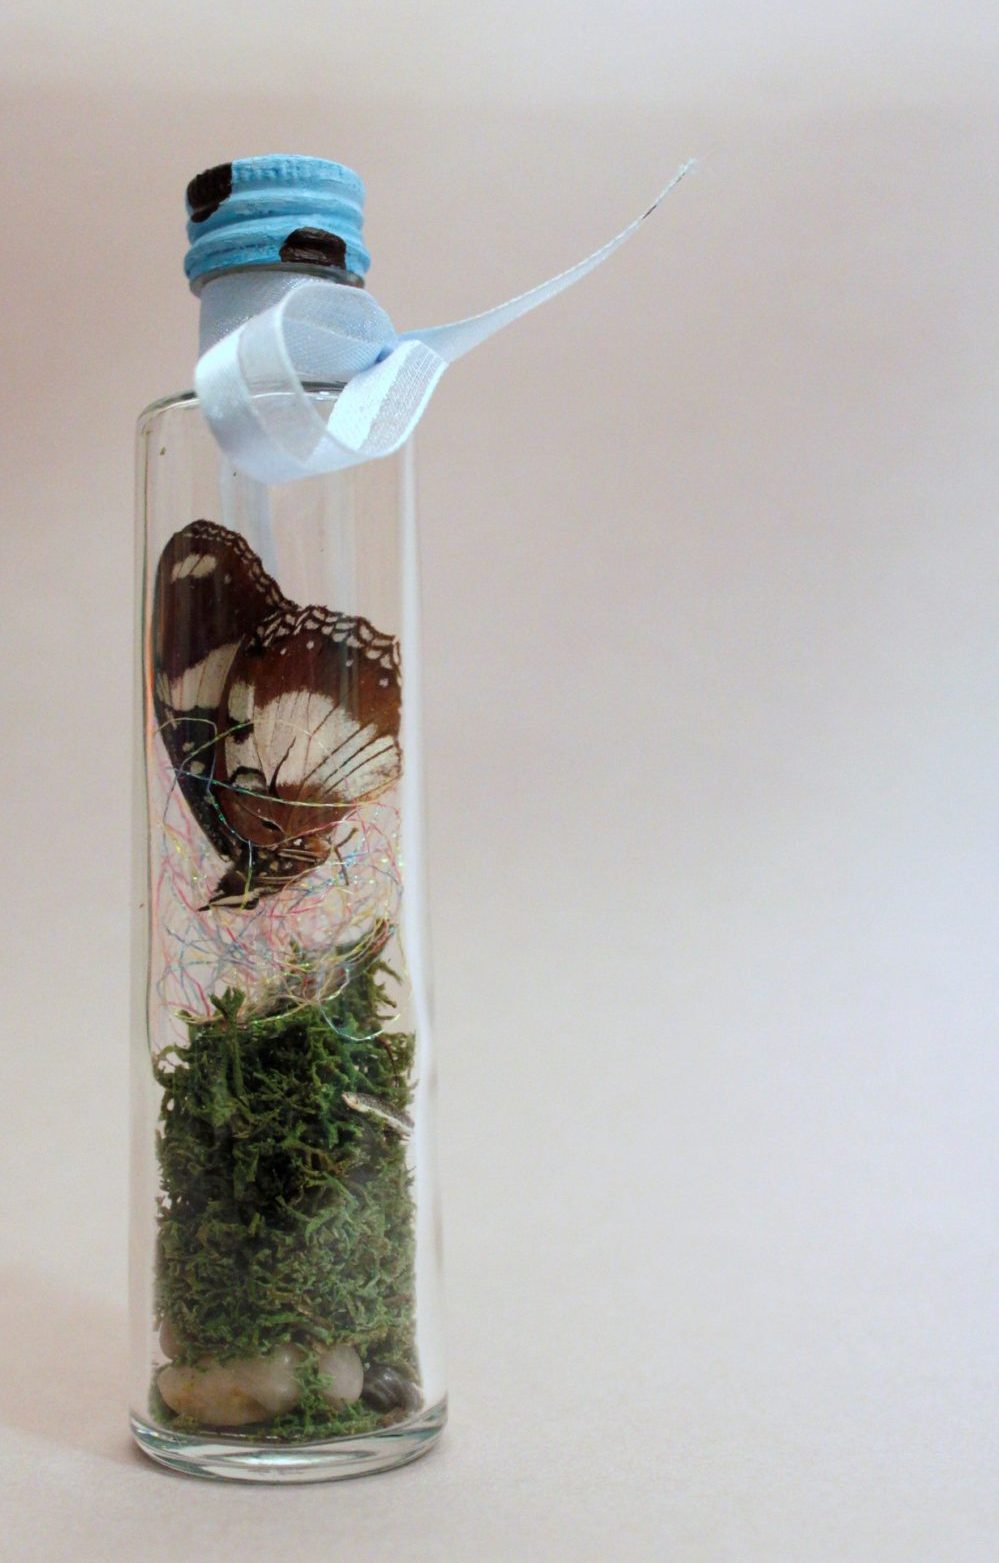 Butterfly atop pebbles and moss in a tall glass bottle